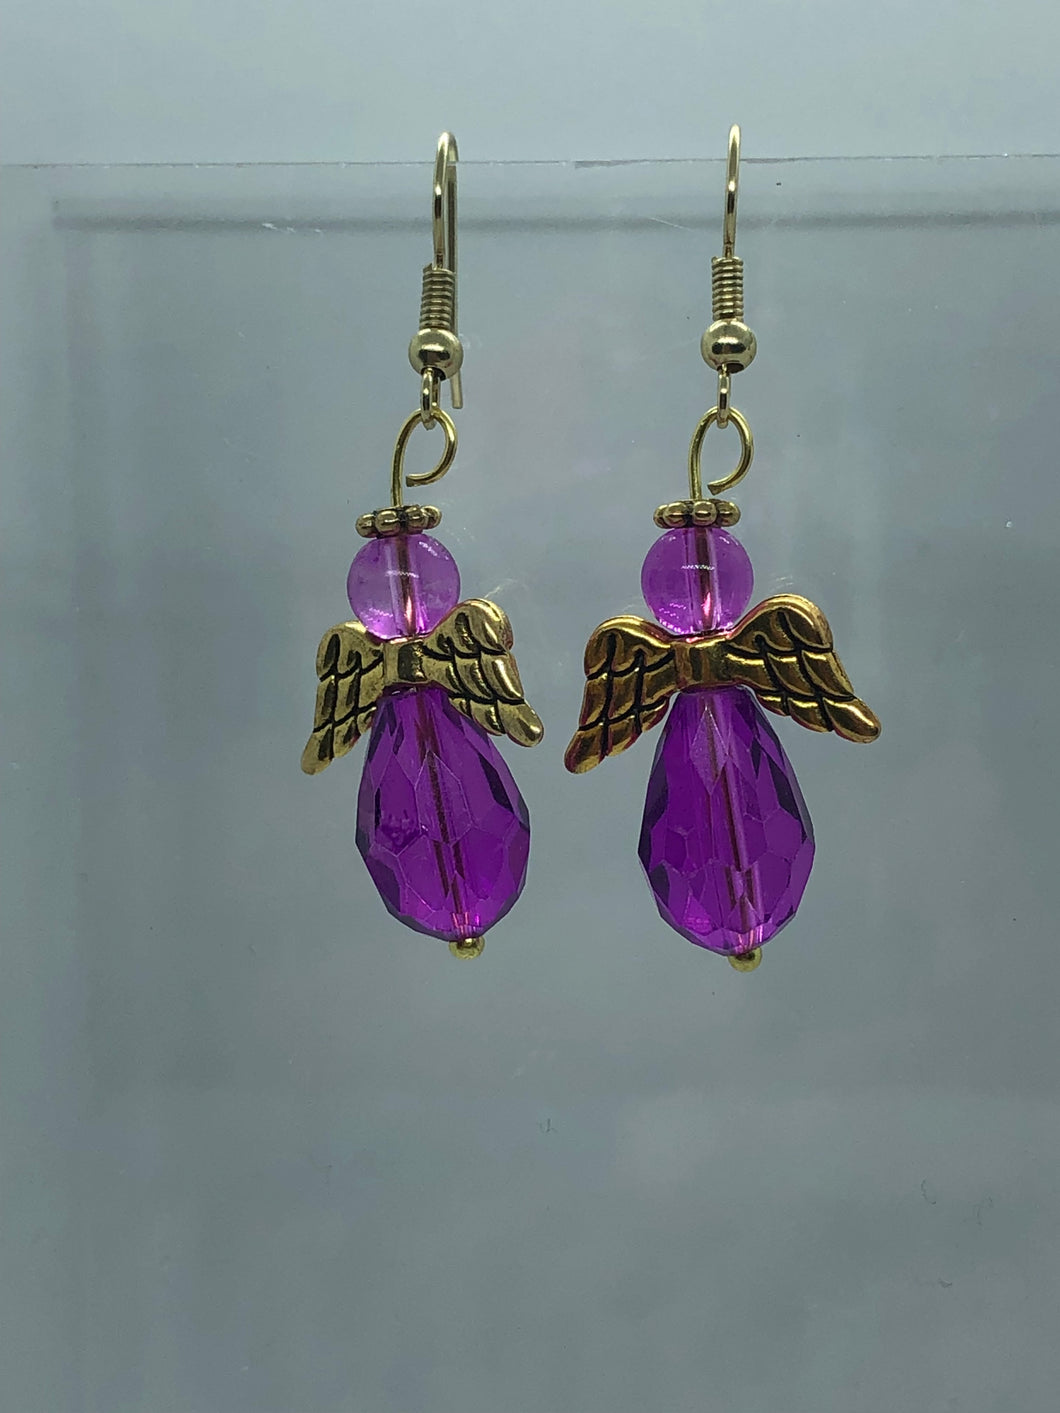 Large Gold and Light Purple Angel Earrings